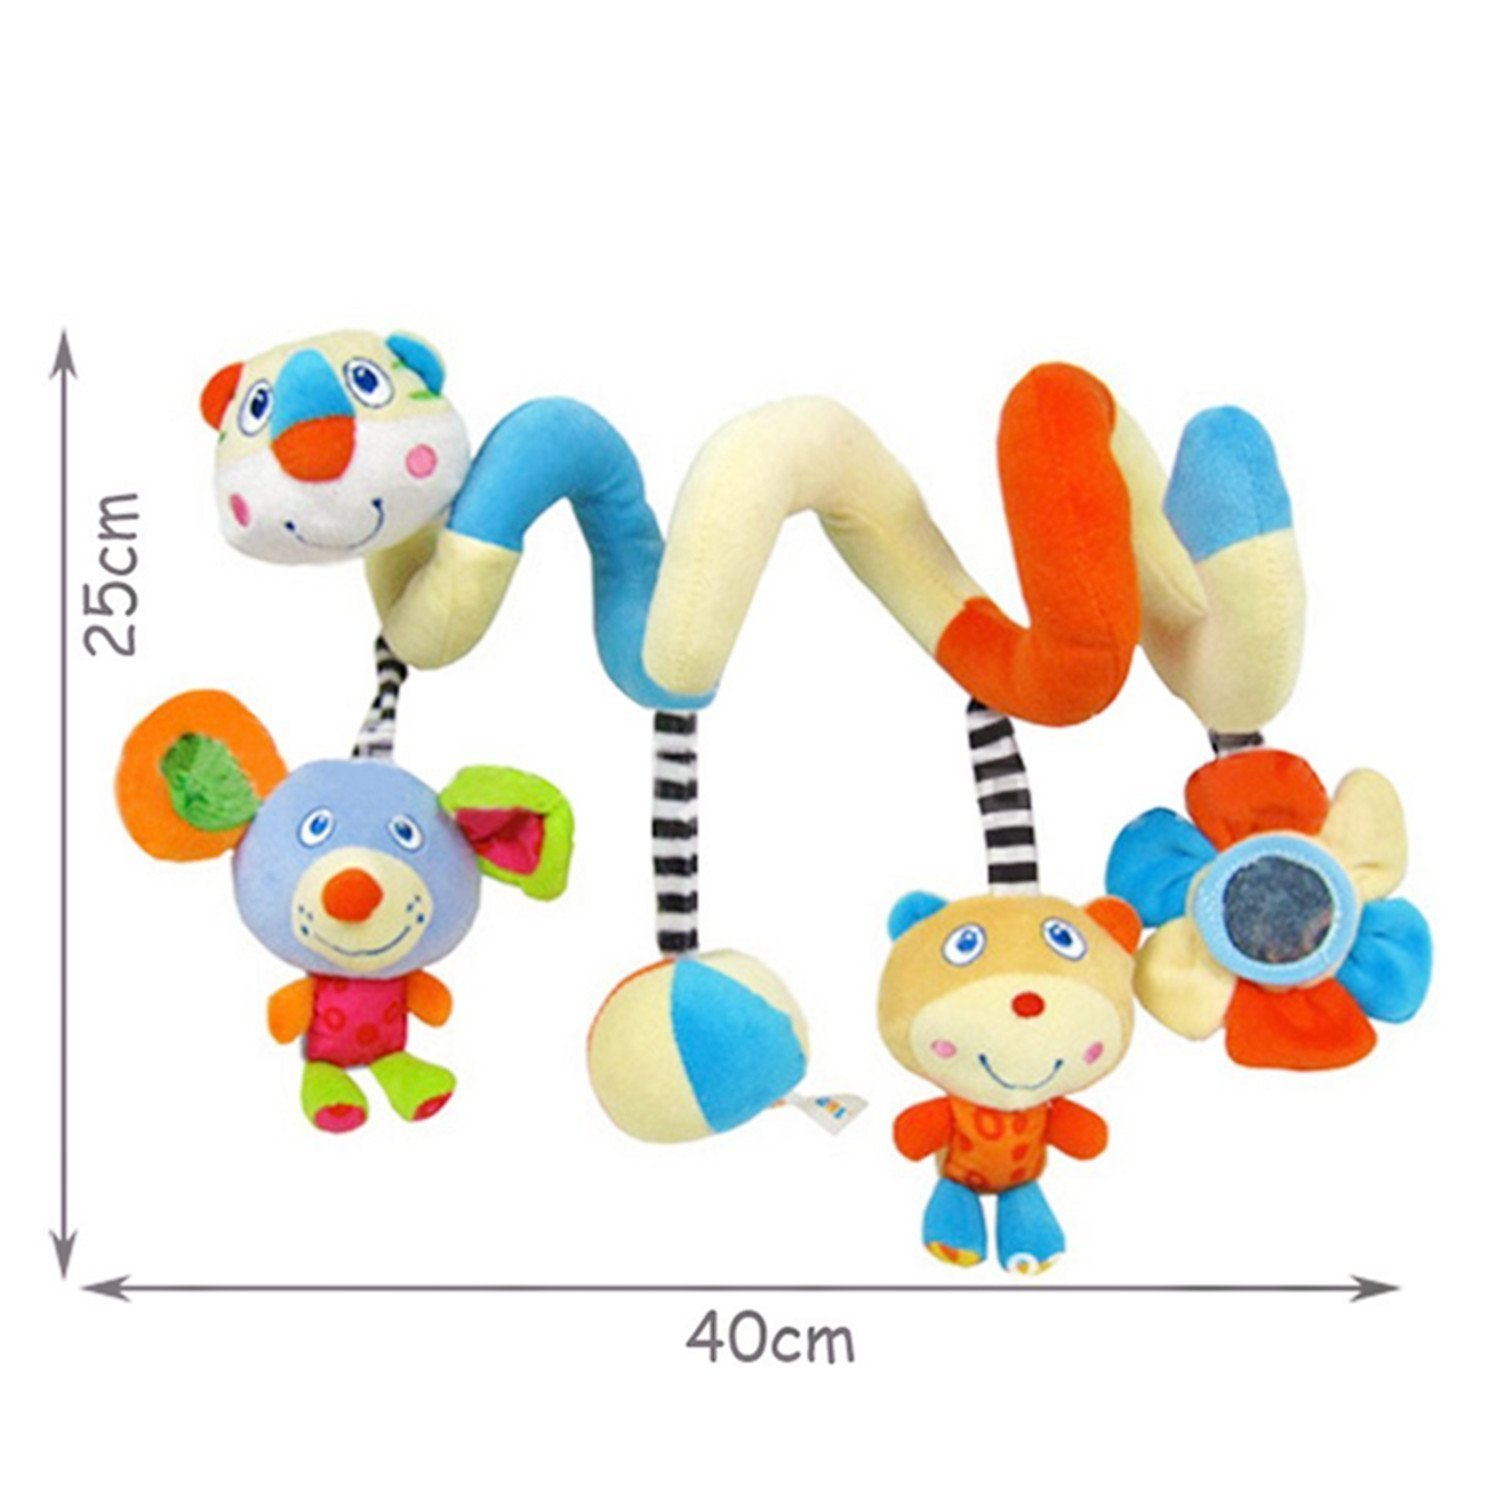 Baby Toy Car Seat Blue//Baby Pram Toy//Girl//Boy//Blue Pram Toy//Boy//Girl//Double Pushchair Toy//Child Toy Car Seat labebe ★Hot Deals Hanging Toy Cute Doll Pram Toy with Blue Astronaut for Unisex Baby